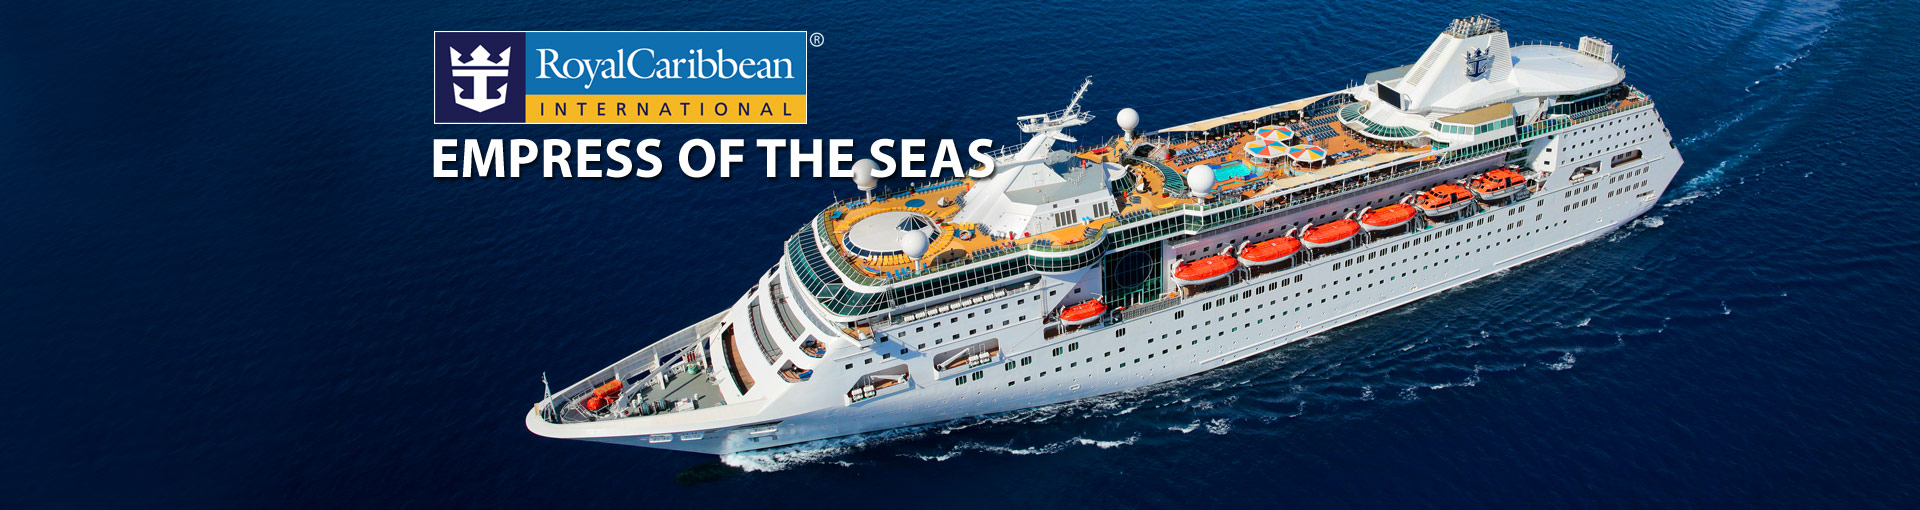 Royal Caribbean Empress of the Seas